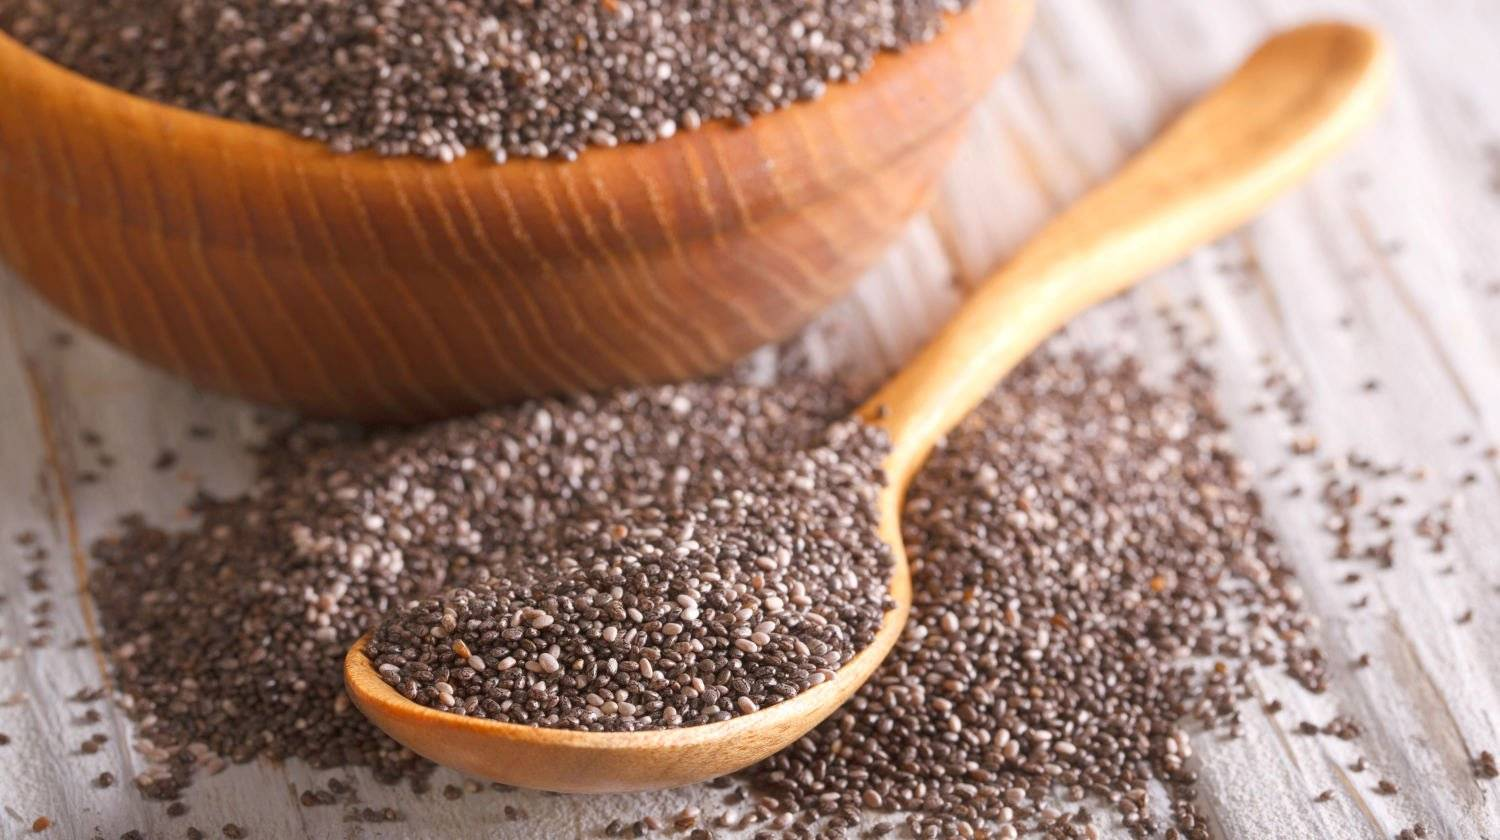 Featured    Healthy Chia seeds in a wooden spoon   How To Eat Chia Seeds   21 Chia Seed Uses